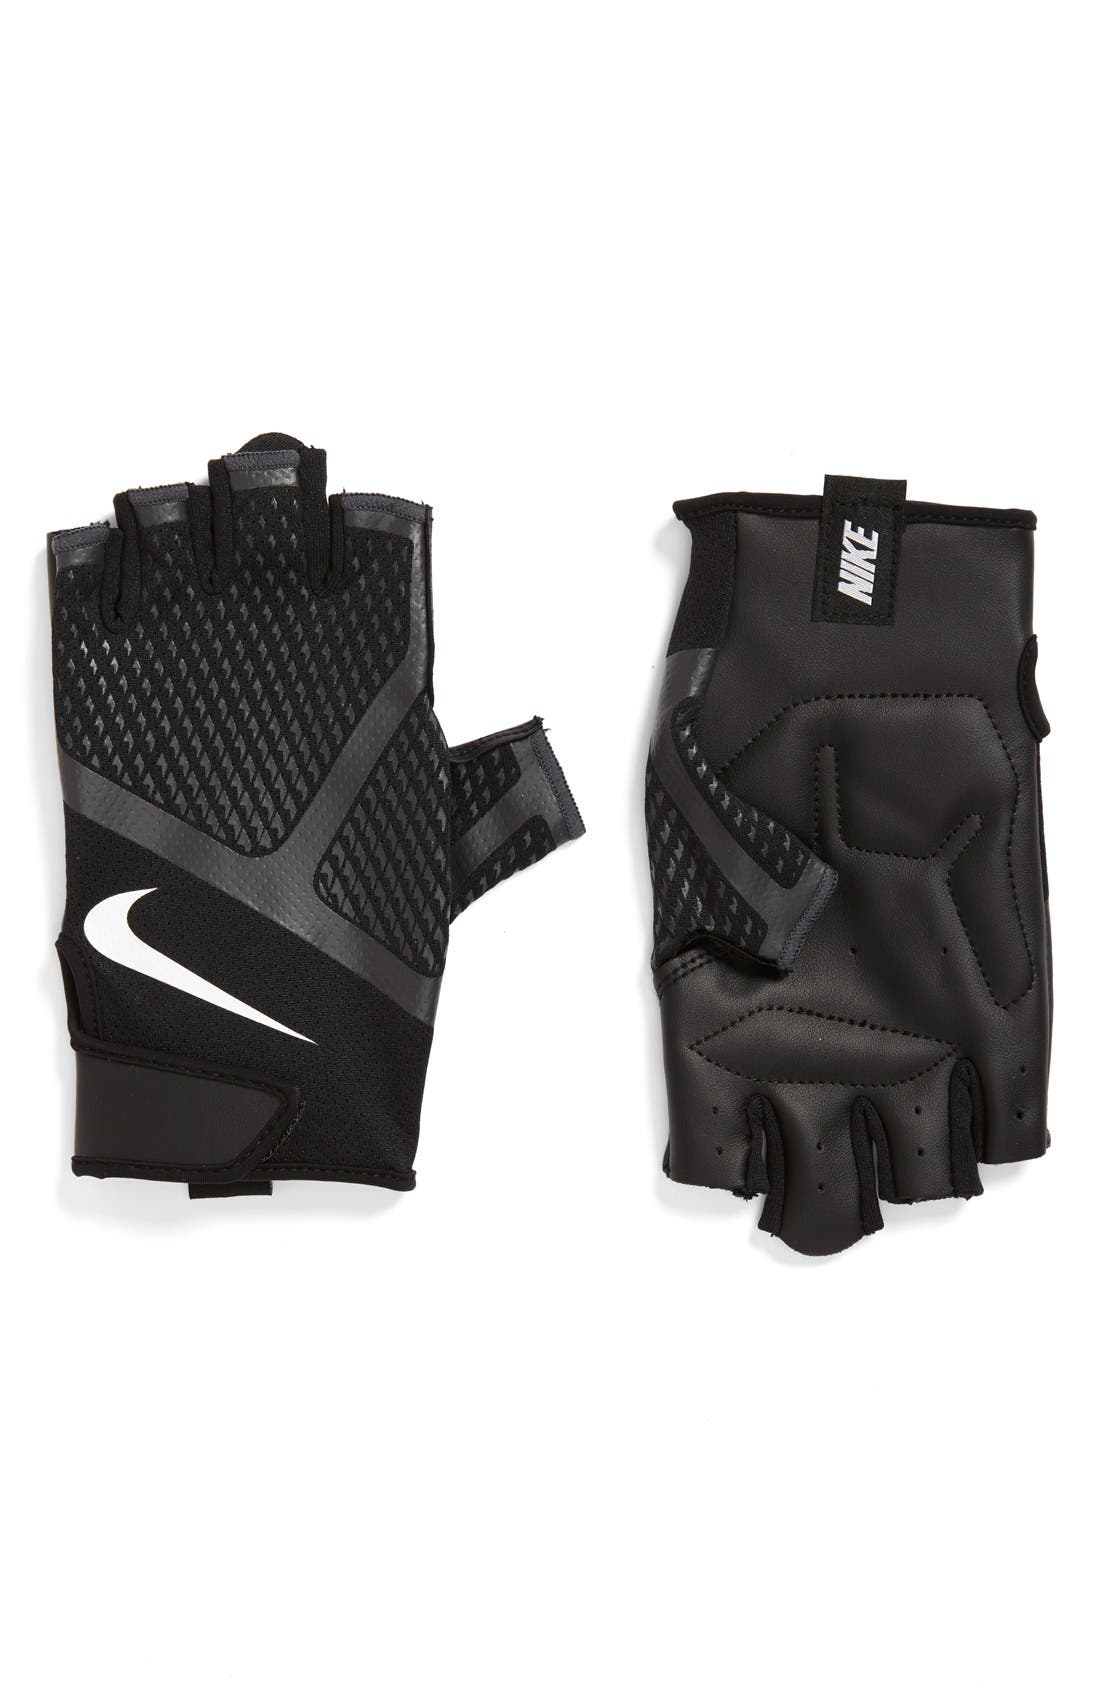 Nike 'Renegade' Fingerless Padded Training Gloves